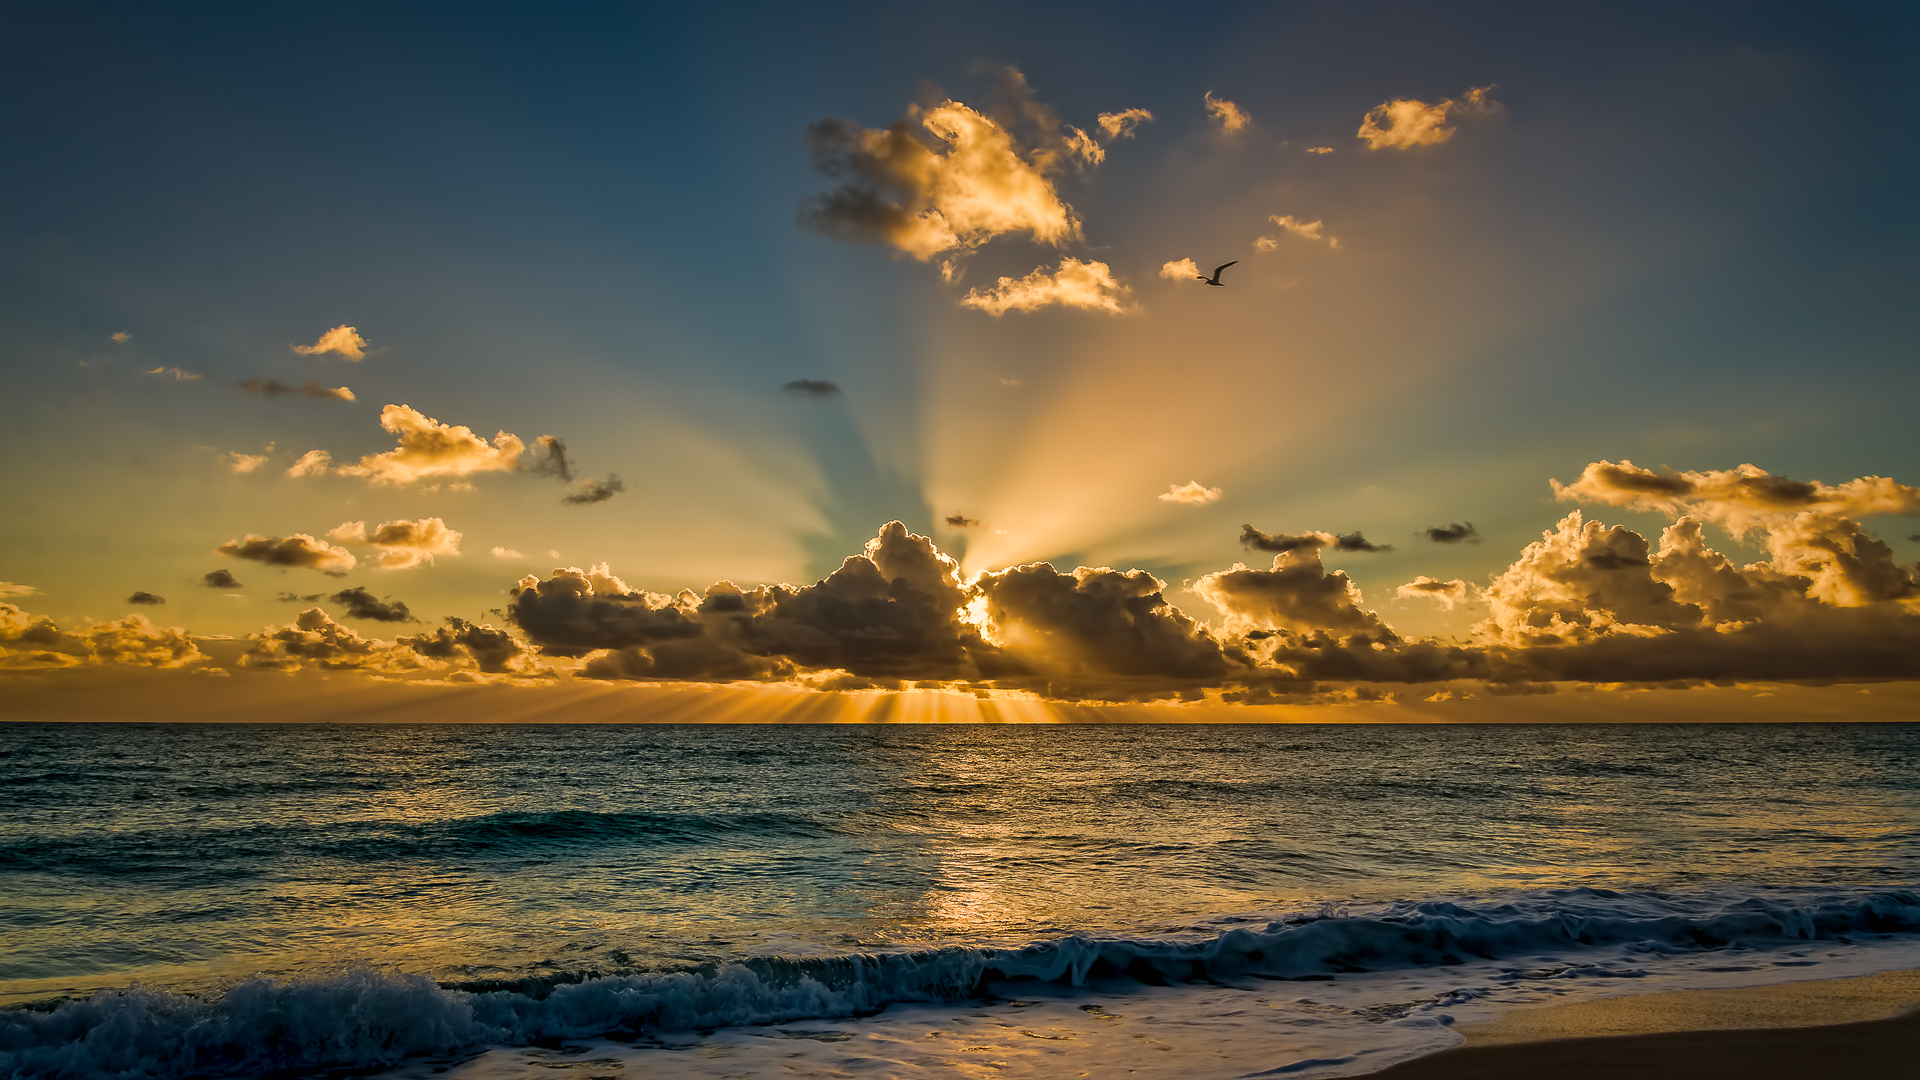 Sunrise at Miami beach